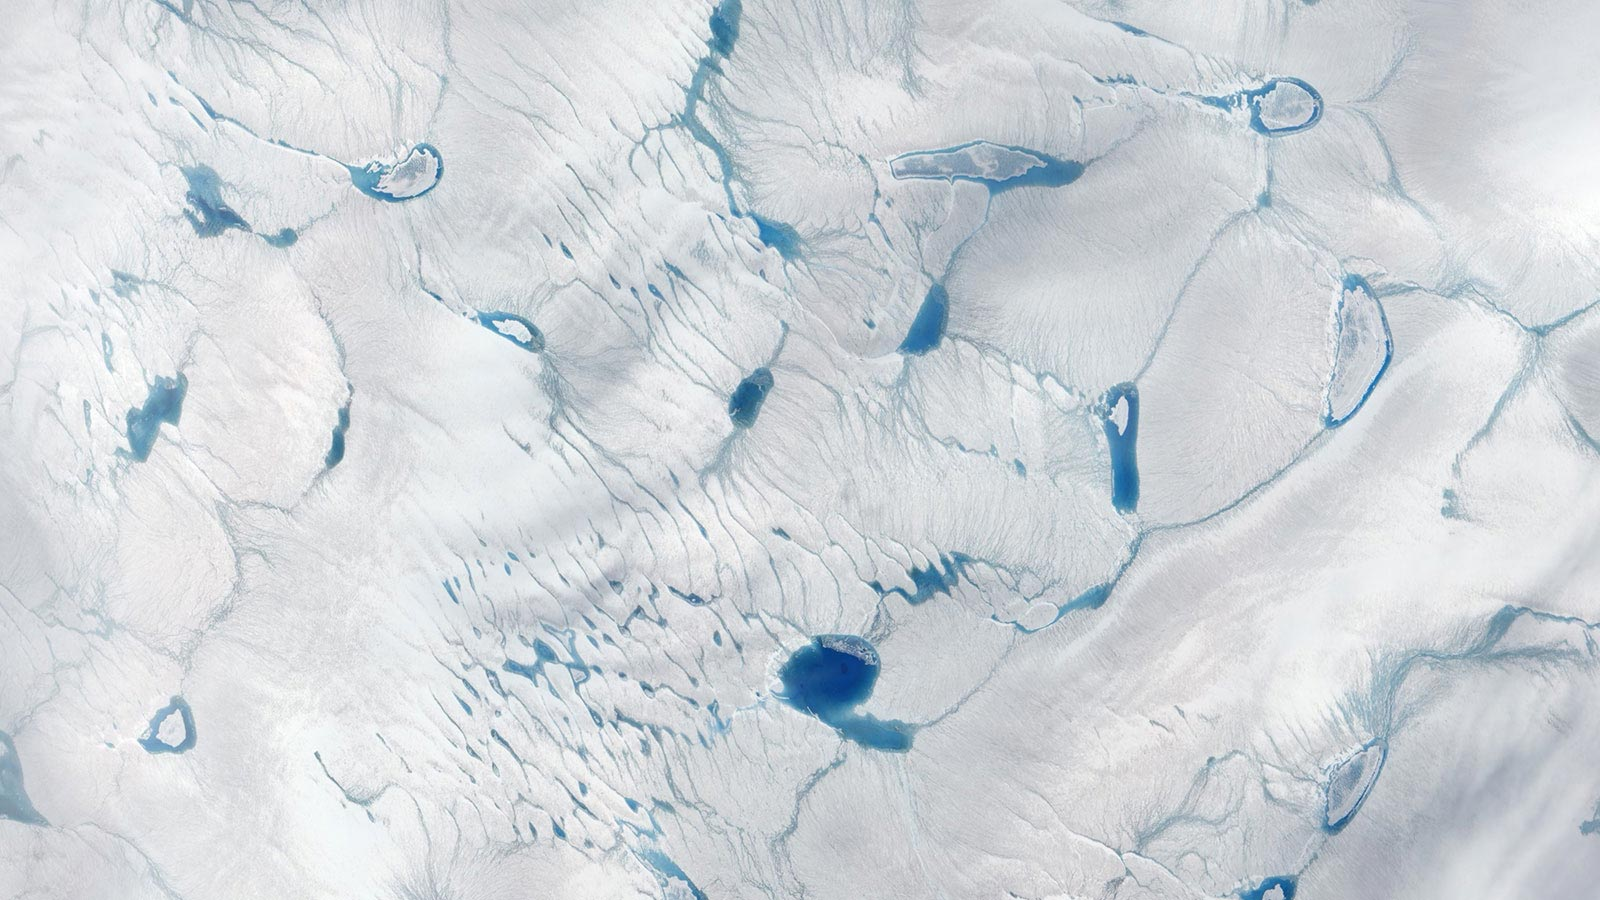 Greenland lost 600 bn tonnes of ice during last summer